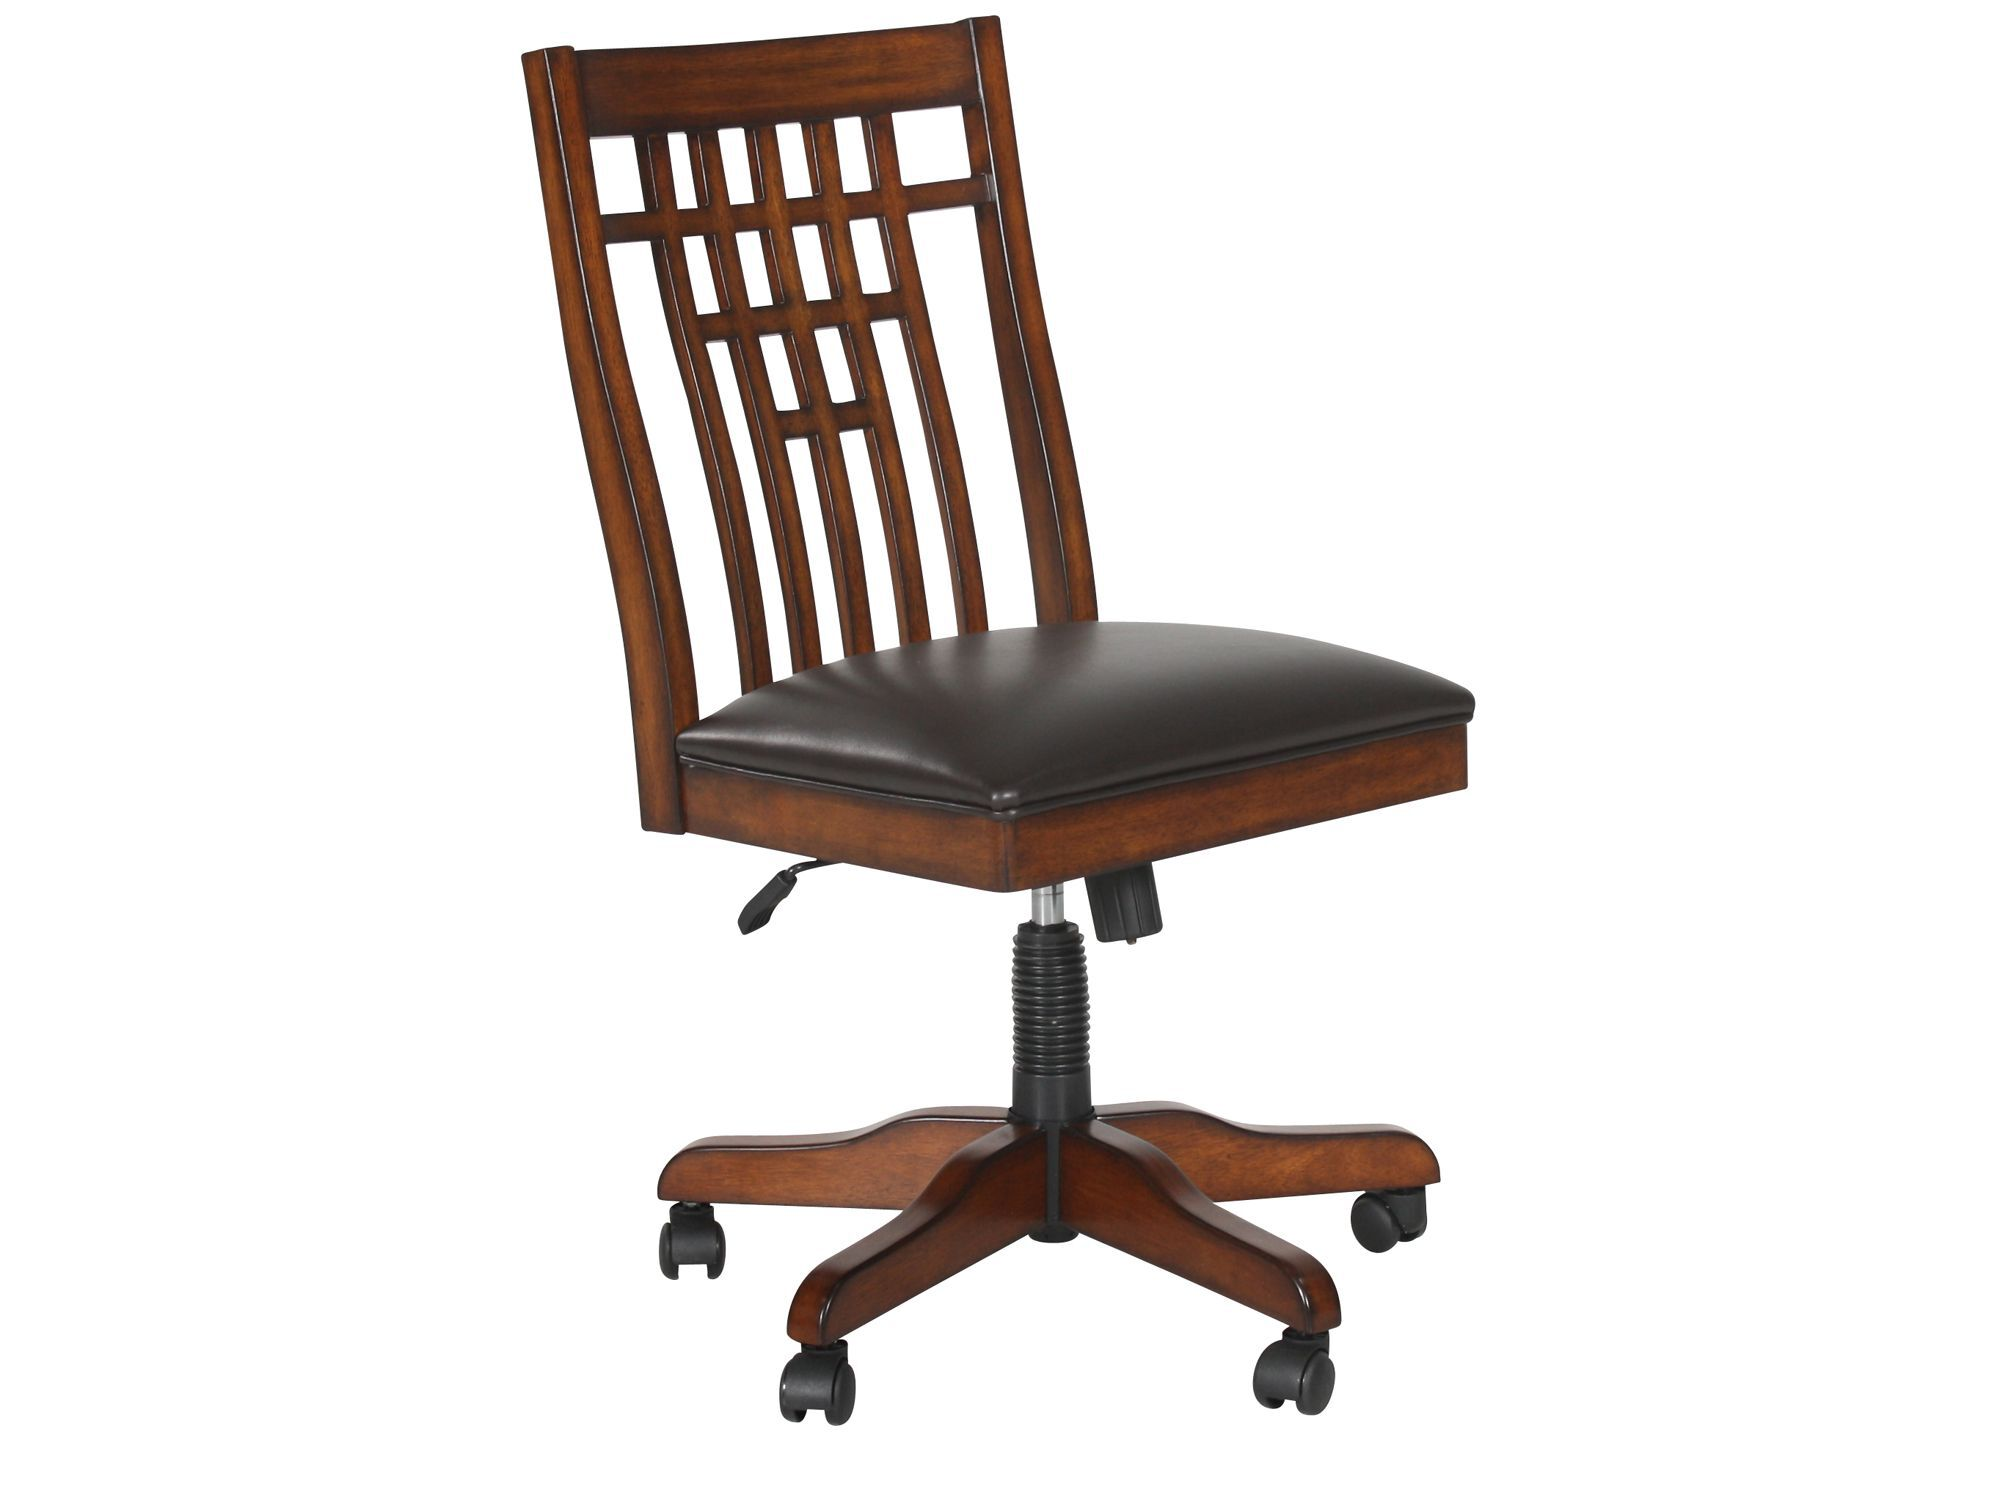 zahara swivel chair joie mimzy owl highchair winners only office mathis brothers furniture